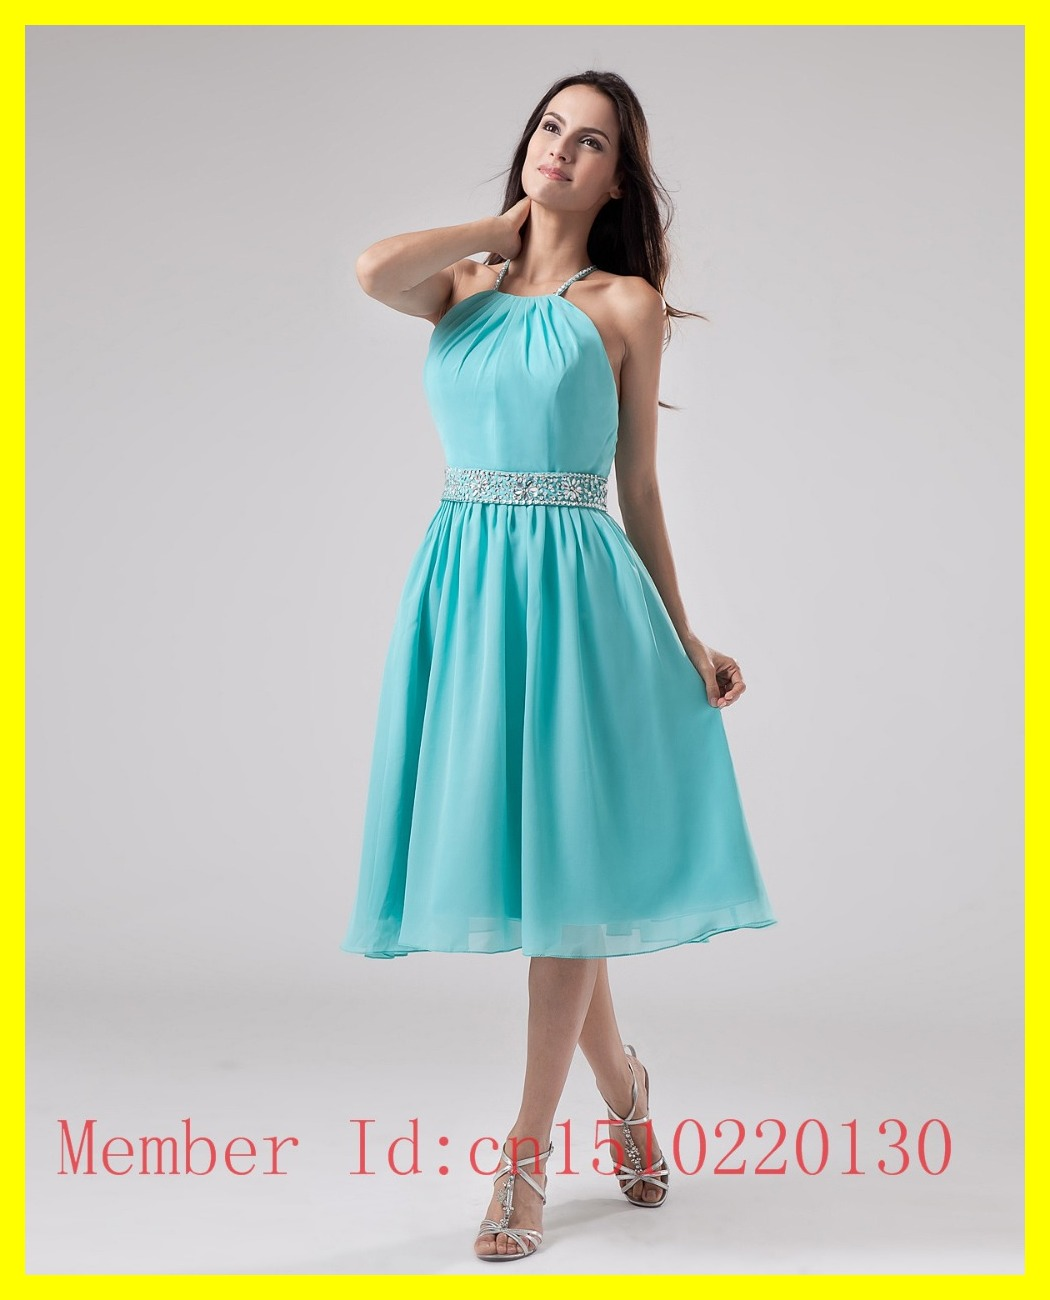 Bridesmaid dresses canada lemon uk plus size junior australia bridesmaid dresses canada lemon uk plus size junior australia adult scalloped built in bra tank sleeveless natural 2015 discount in bridesmaid dresses from ombrellifo Images